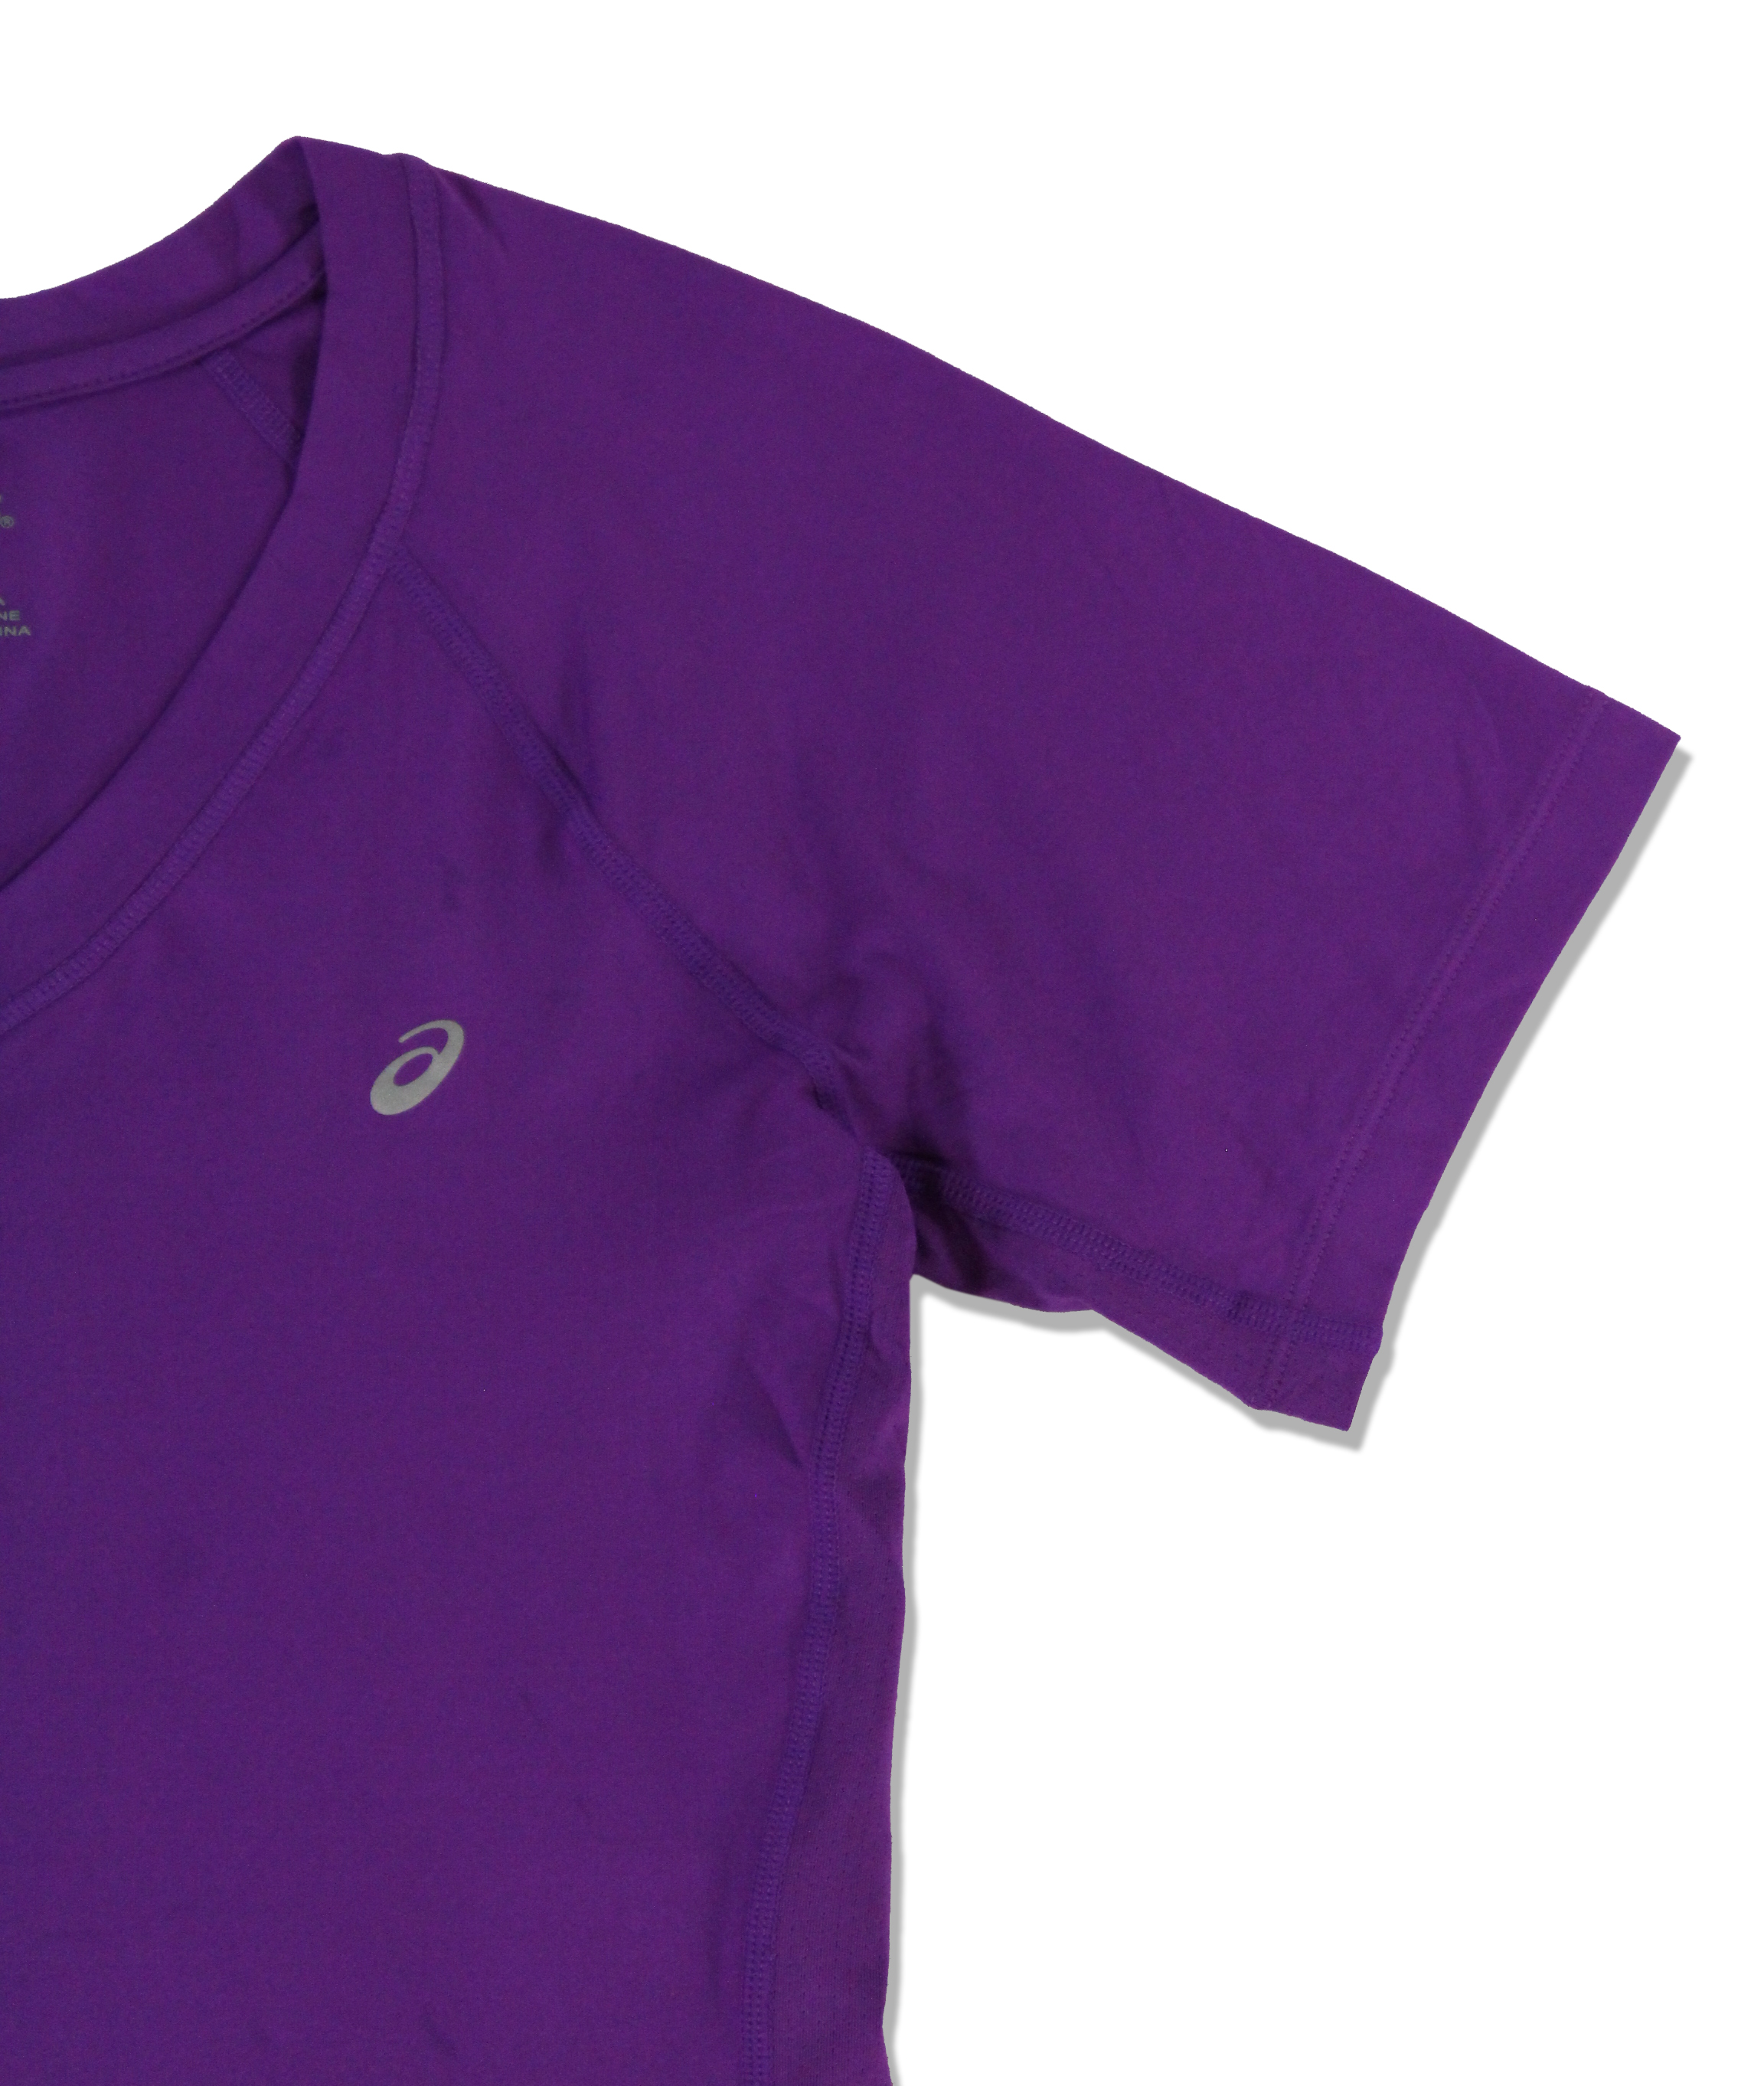 Asics-NEW-Solid-Hue-Women-039-s-V-Neck-Performance-ASX-Dry-T-Shirt-Top-38 thumbnail 14